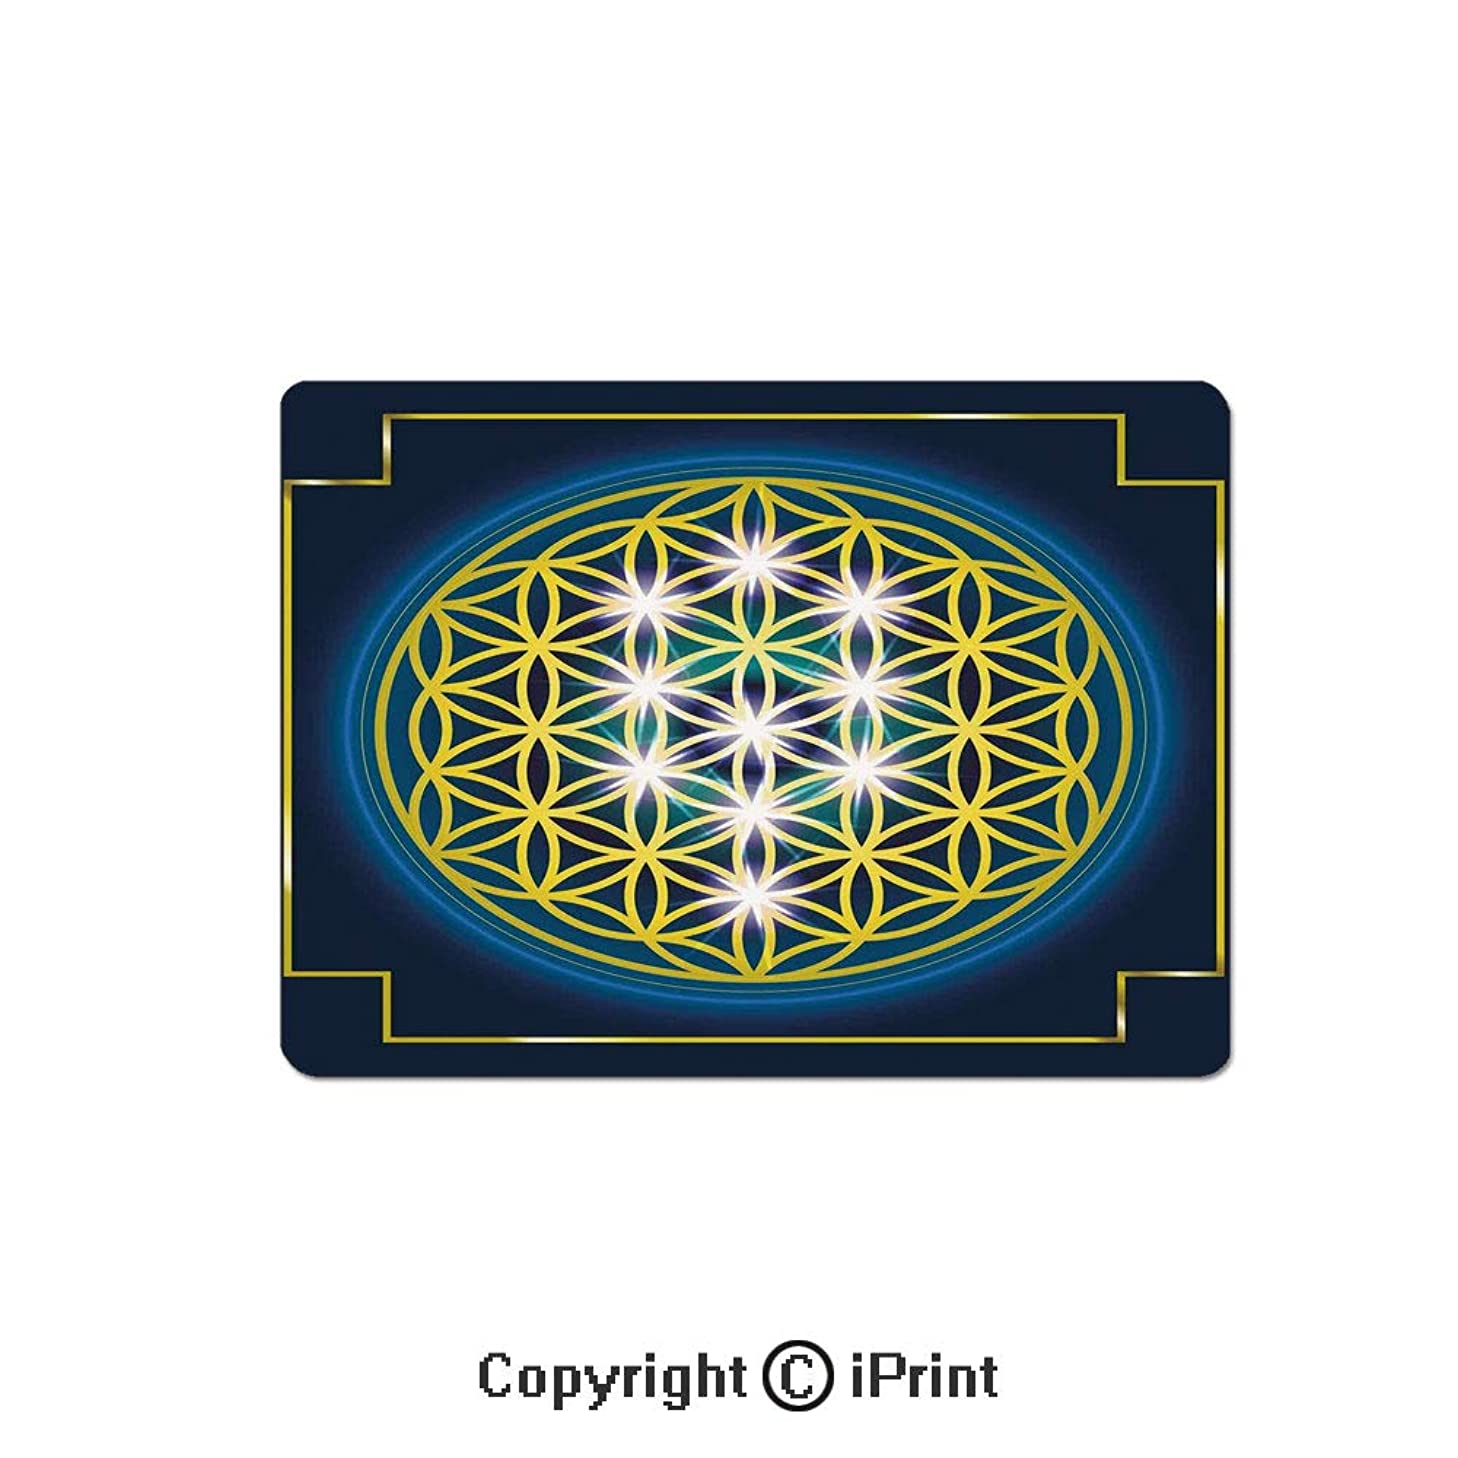 Anti-Slip Mouse Pad,Flower of Life in Internal Spirals with Vibrant Spots Belief Tradition Design Decorative Mouse Mat,Non-Slip Rubber Base Mousepad,7.9x9.5 inch,Indigo Yellow